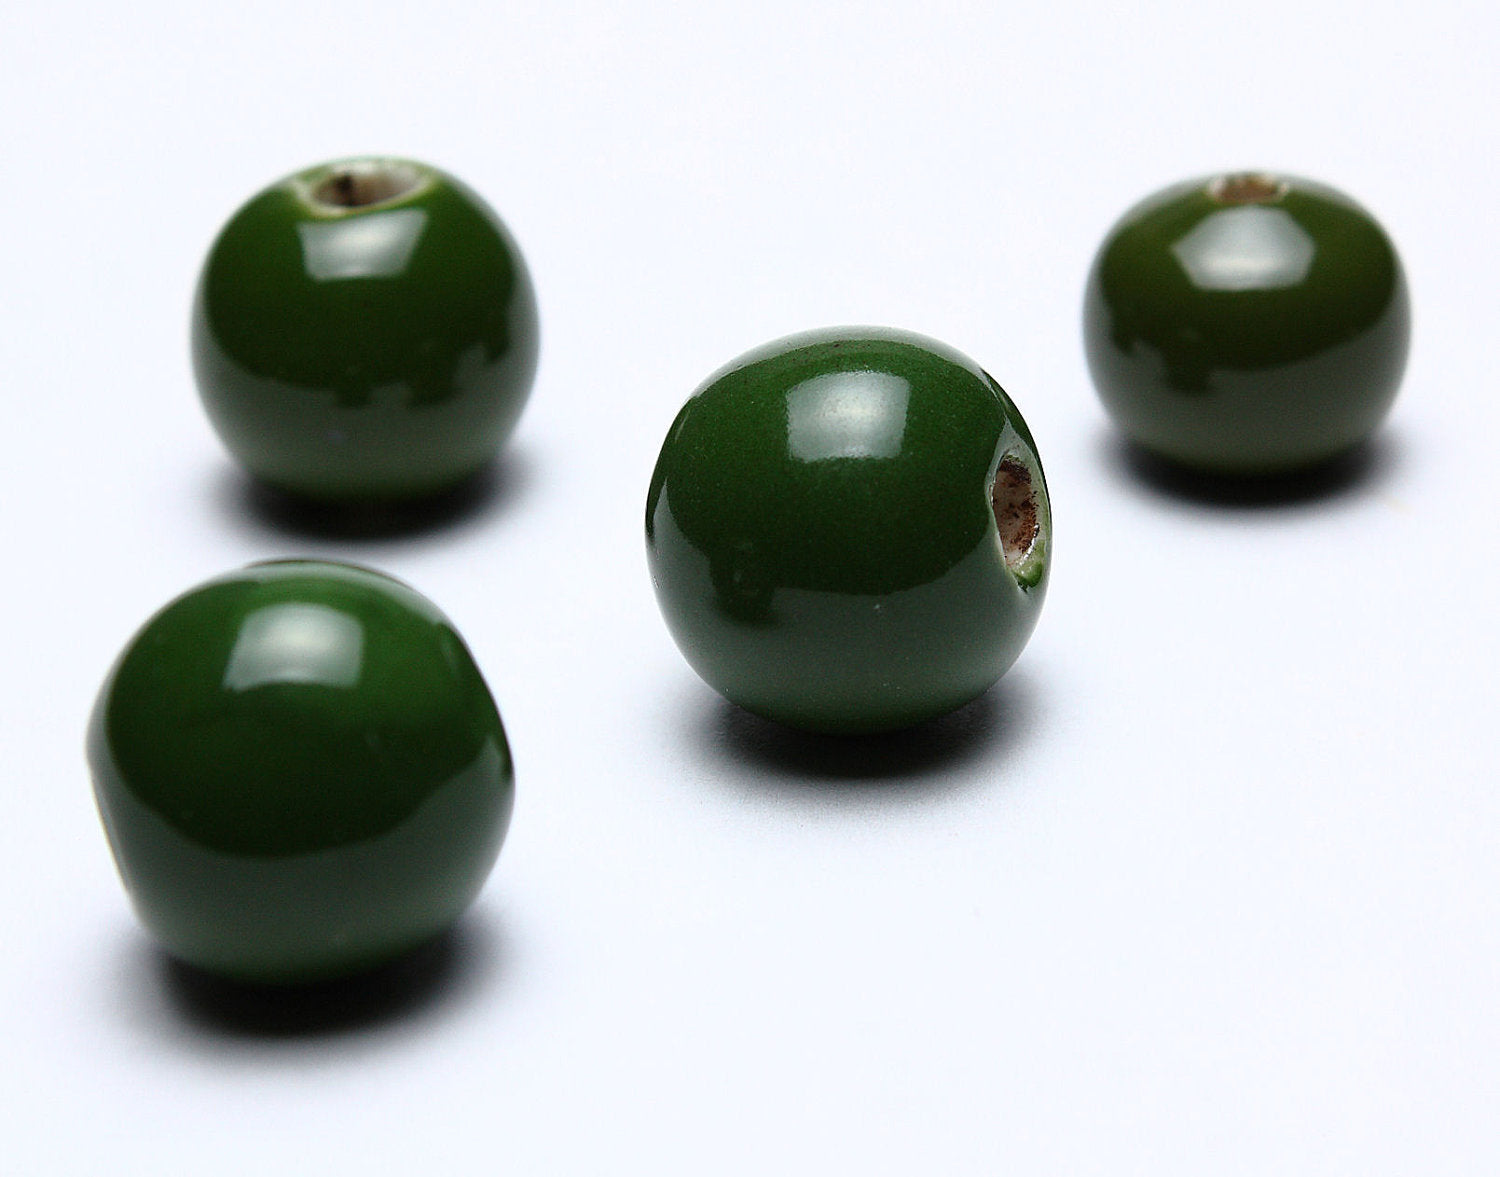 13mm Green handmade beads - 13mm bright glazed porcelain beads - 13mm ceramic beads - 4 pieces (590)